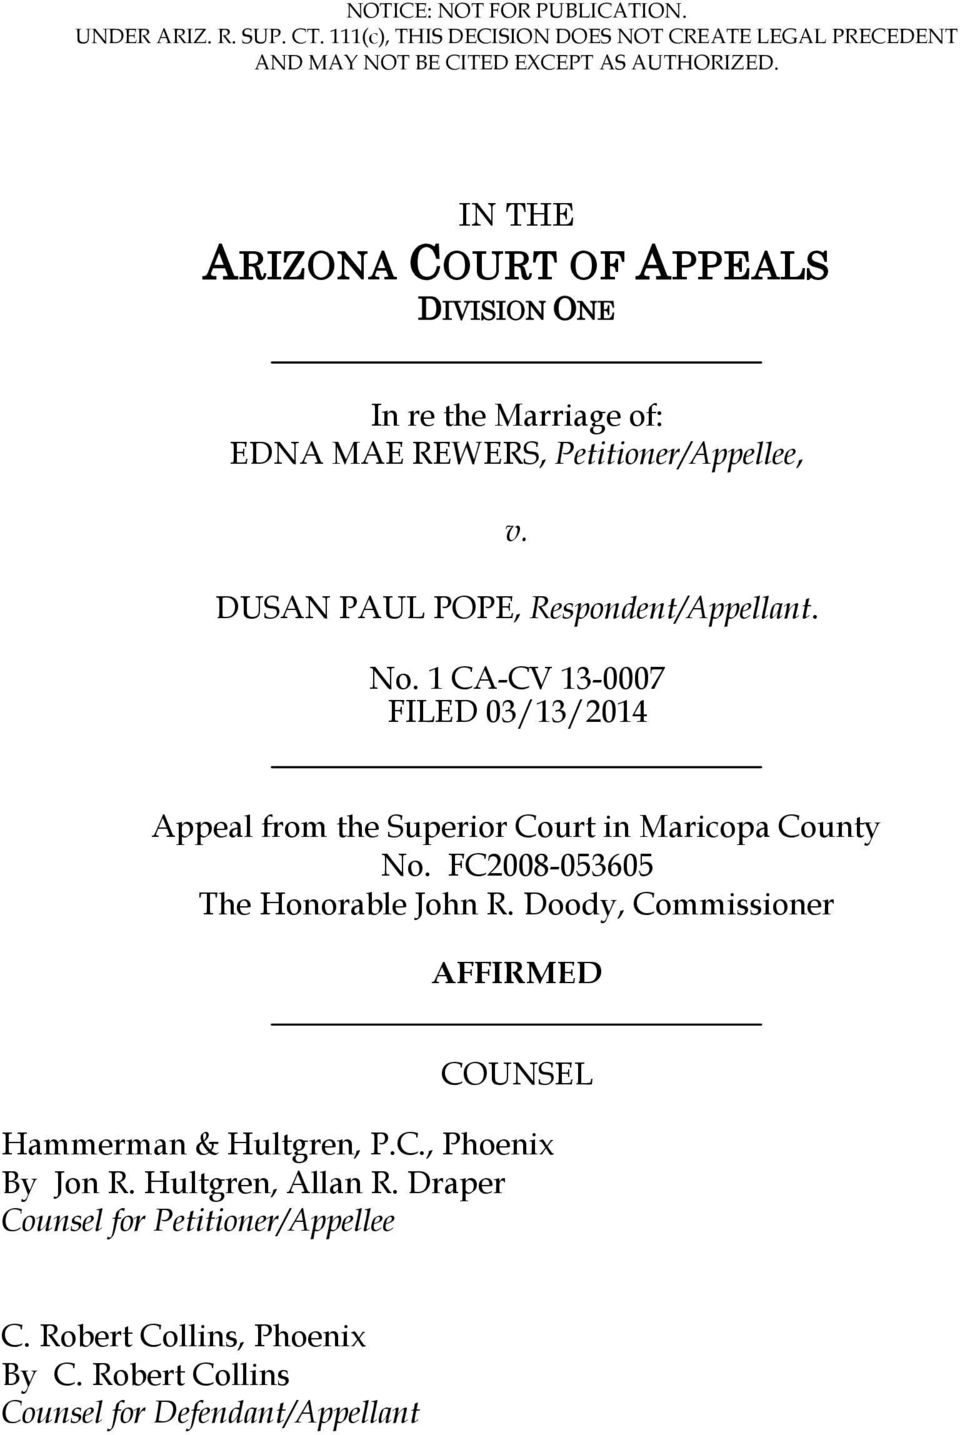 1 CA-CV 13-0007 Appeal from the Superior Court in Maricopa County No. FC2008-053605 The Honorable John R.